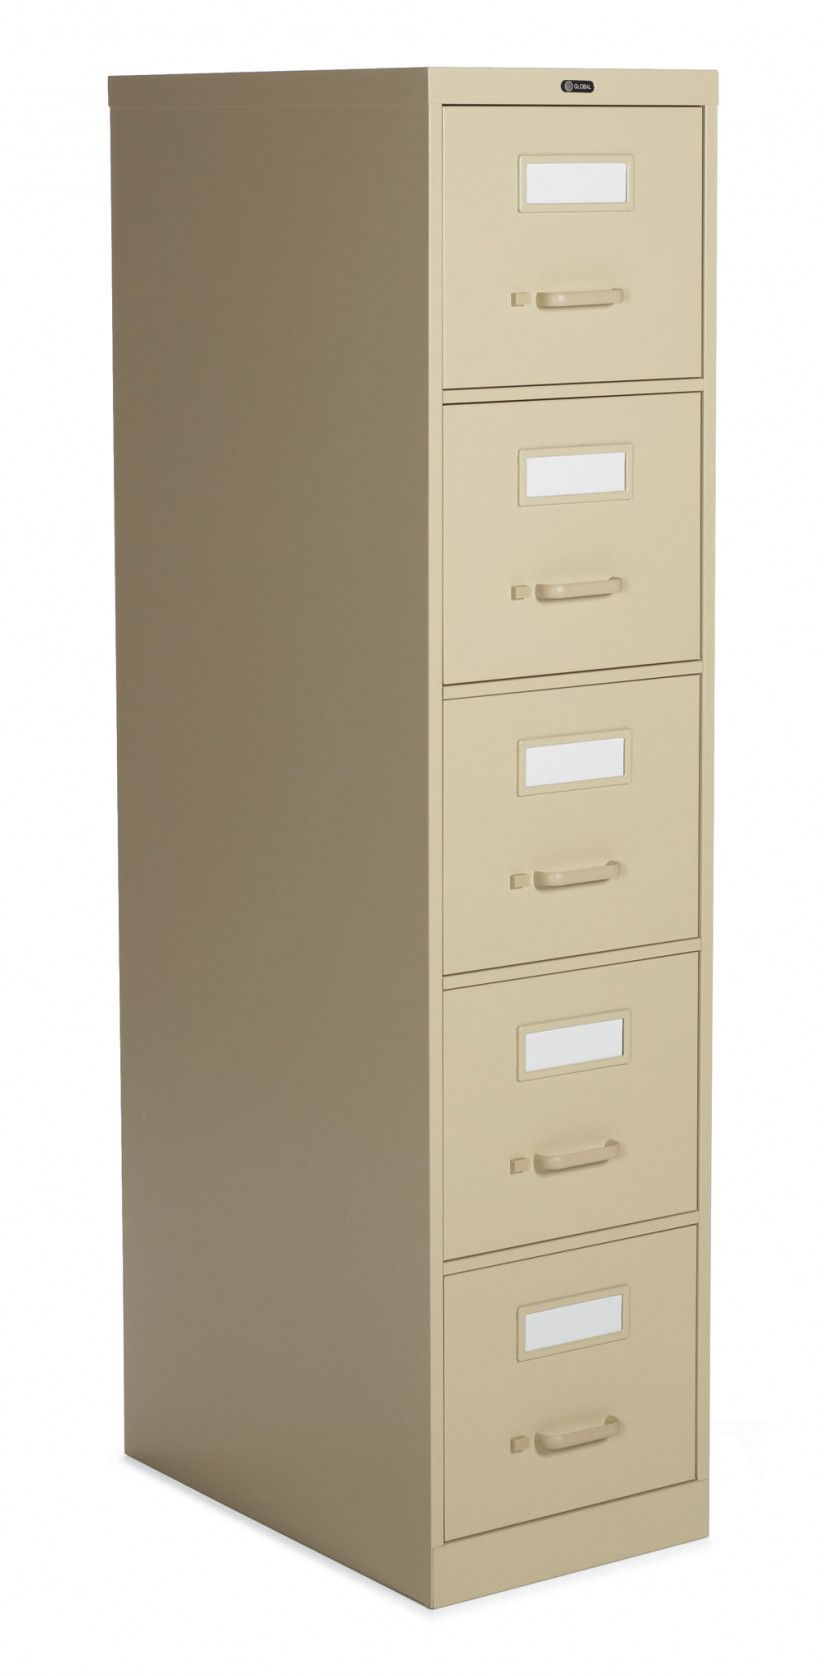 Inspirational Hon 5 Drawer File Cabinet